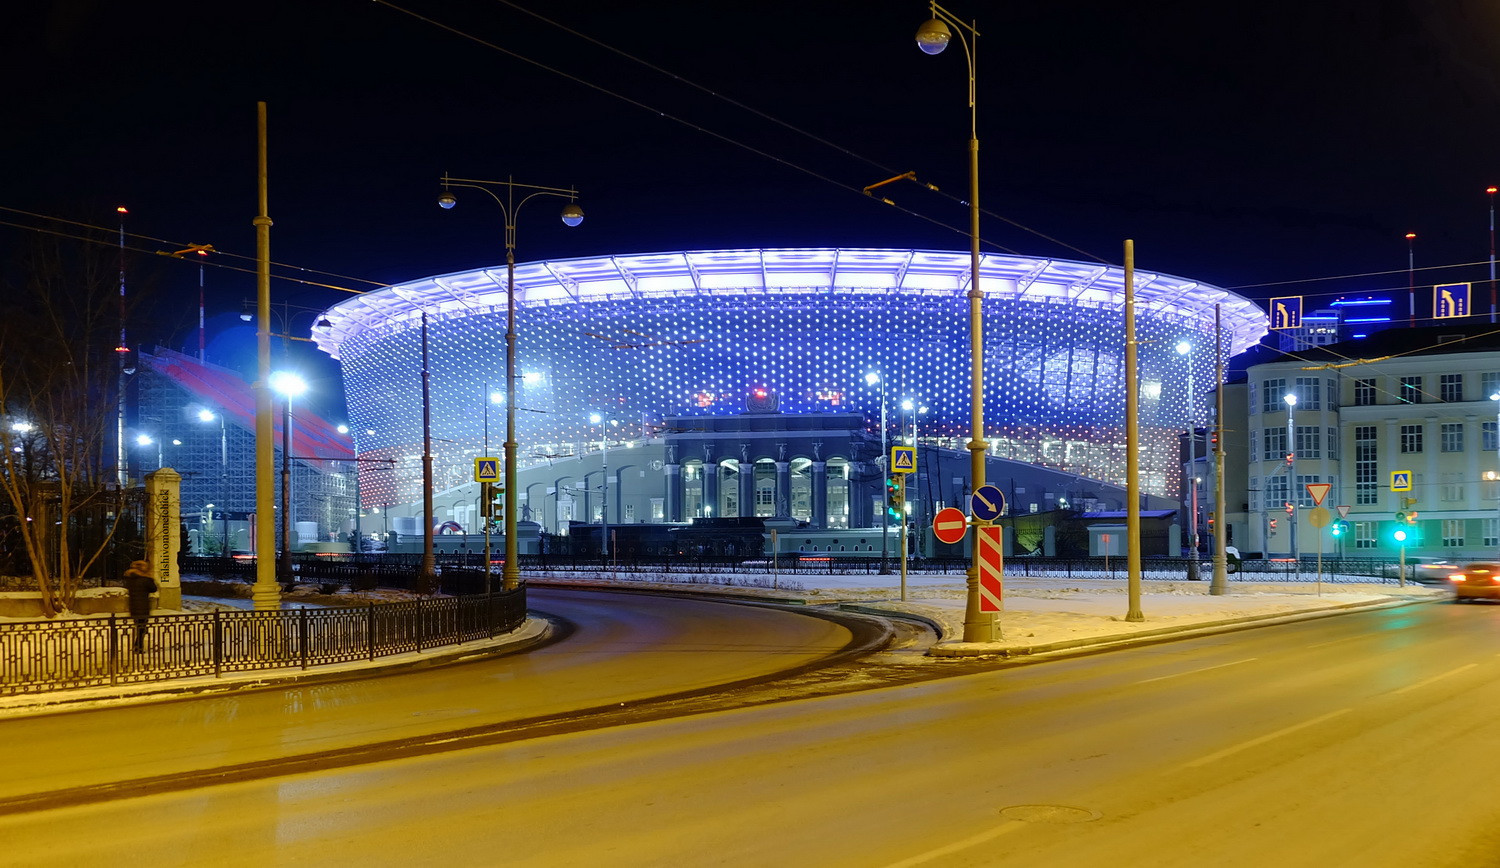 Yekaterinburg Arena has been proposed as one of the venues to be used for the 2023 Summer Universiade ©Getty Images